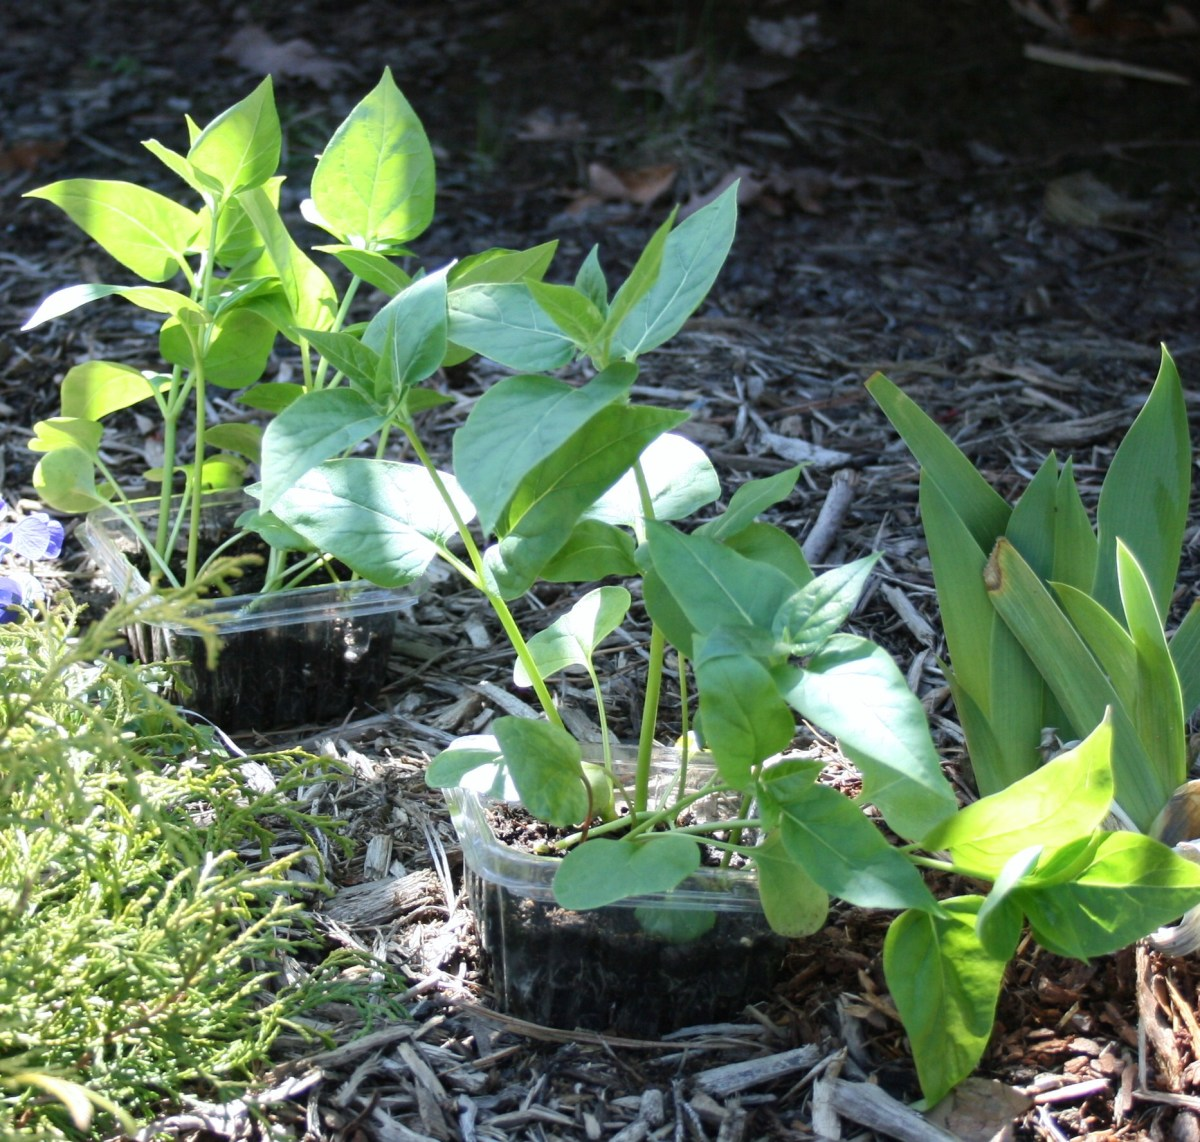 To harden them off before transplanting, seedlings like these four o'clocks are set outside in a warm, shady spot.